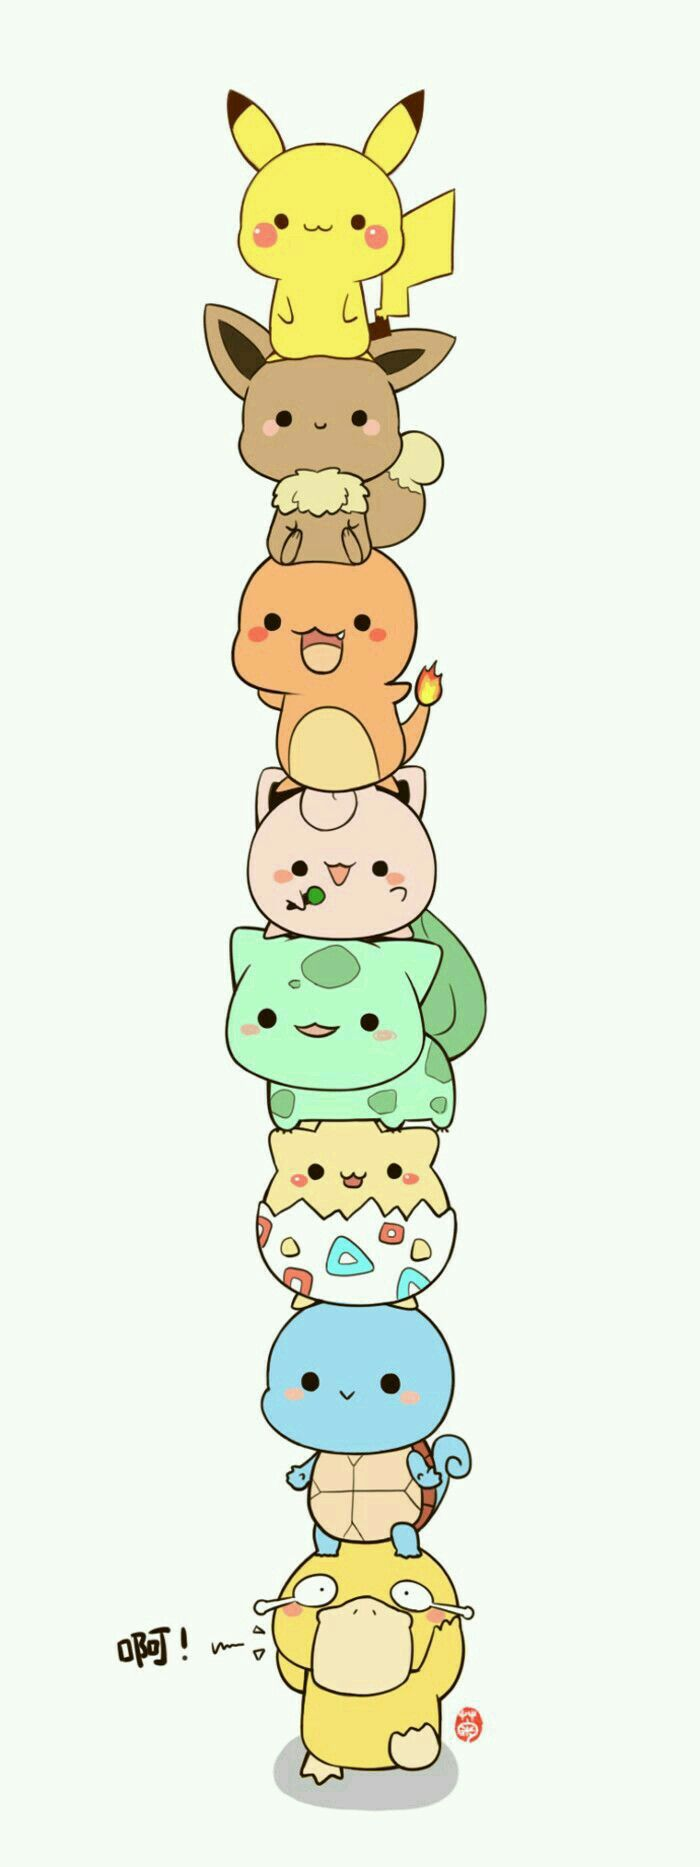 Cutiemon  Want to catch them all !!!